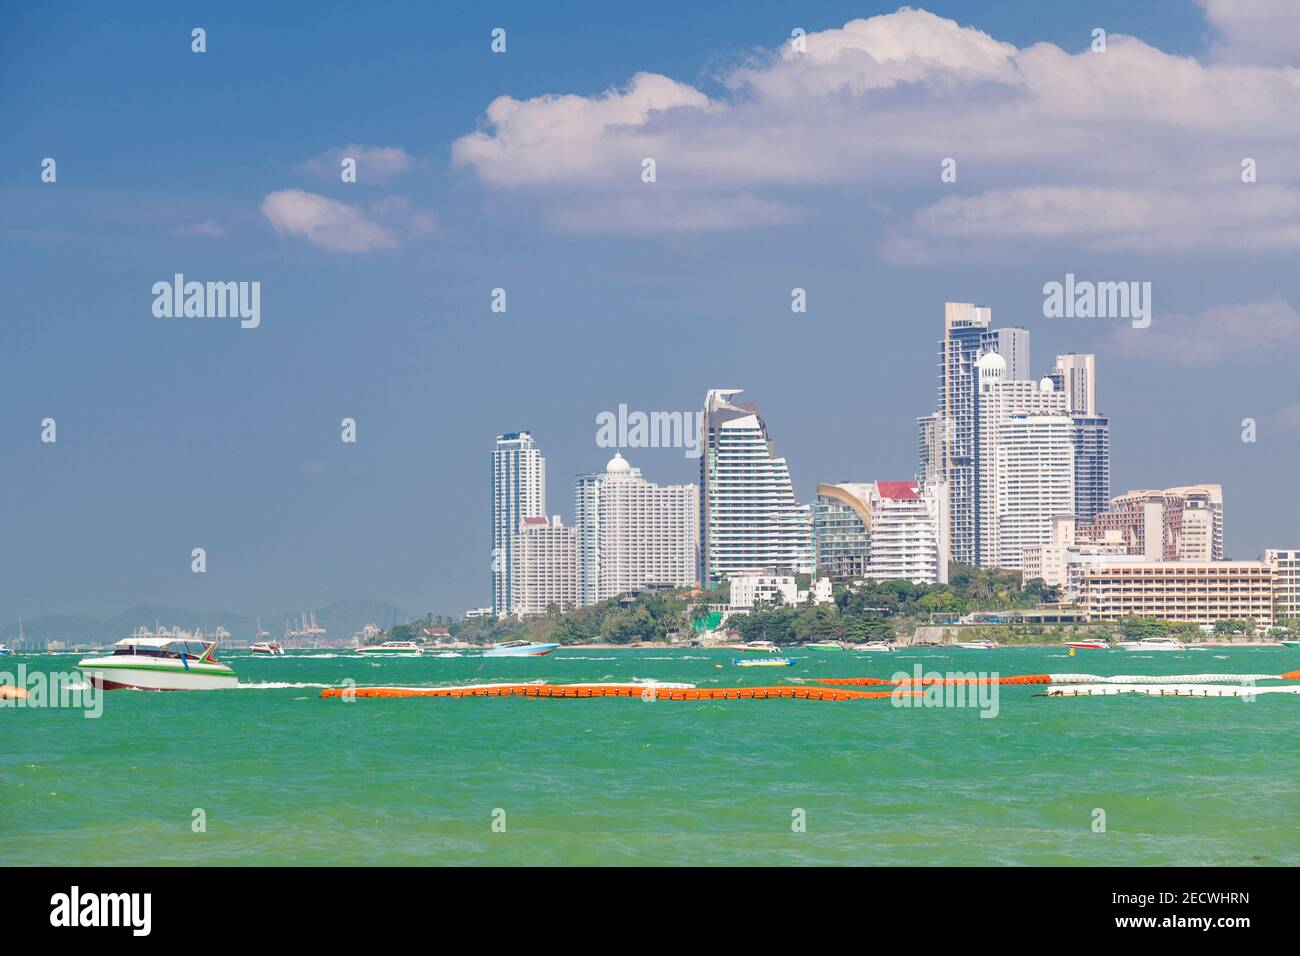 Background hotels and boats on turquoise water at Pattaya Beach, Thailand Stock Photo